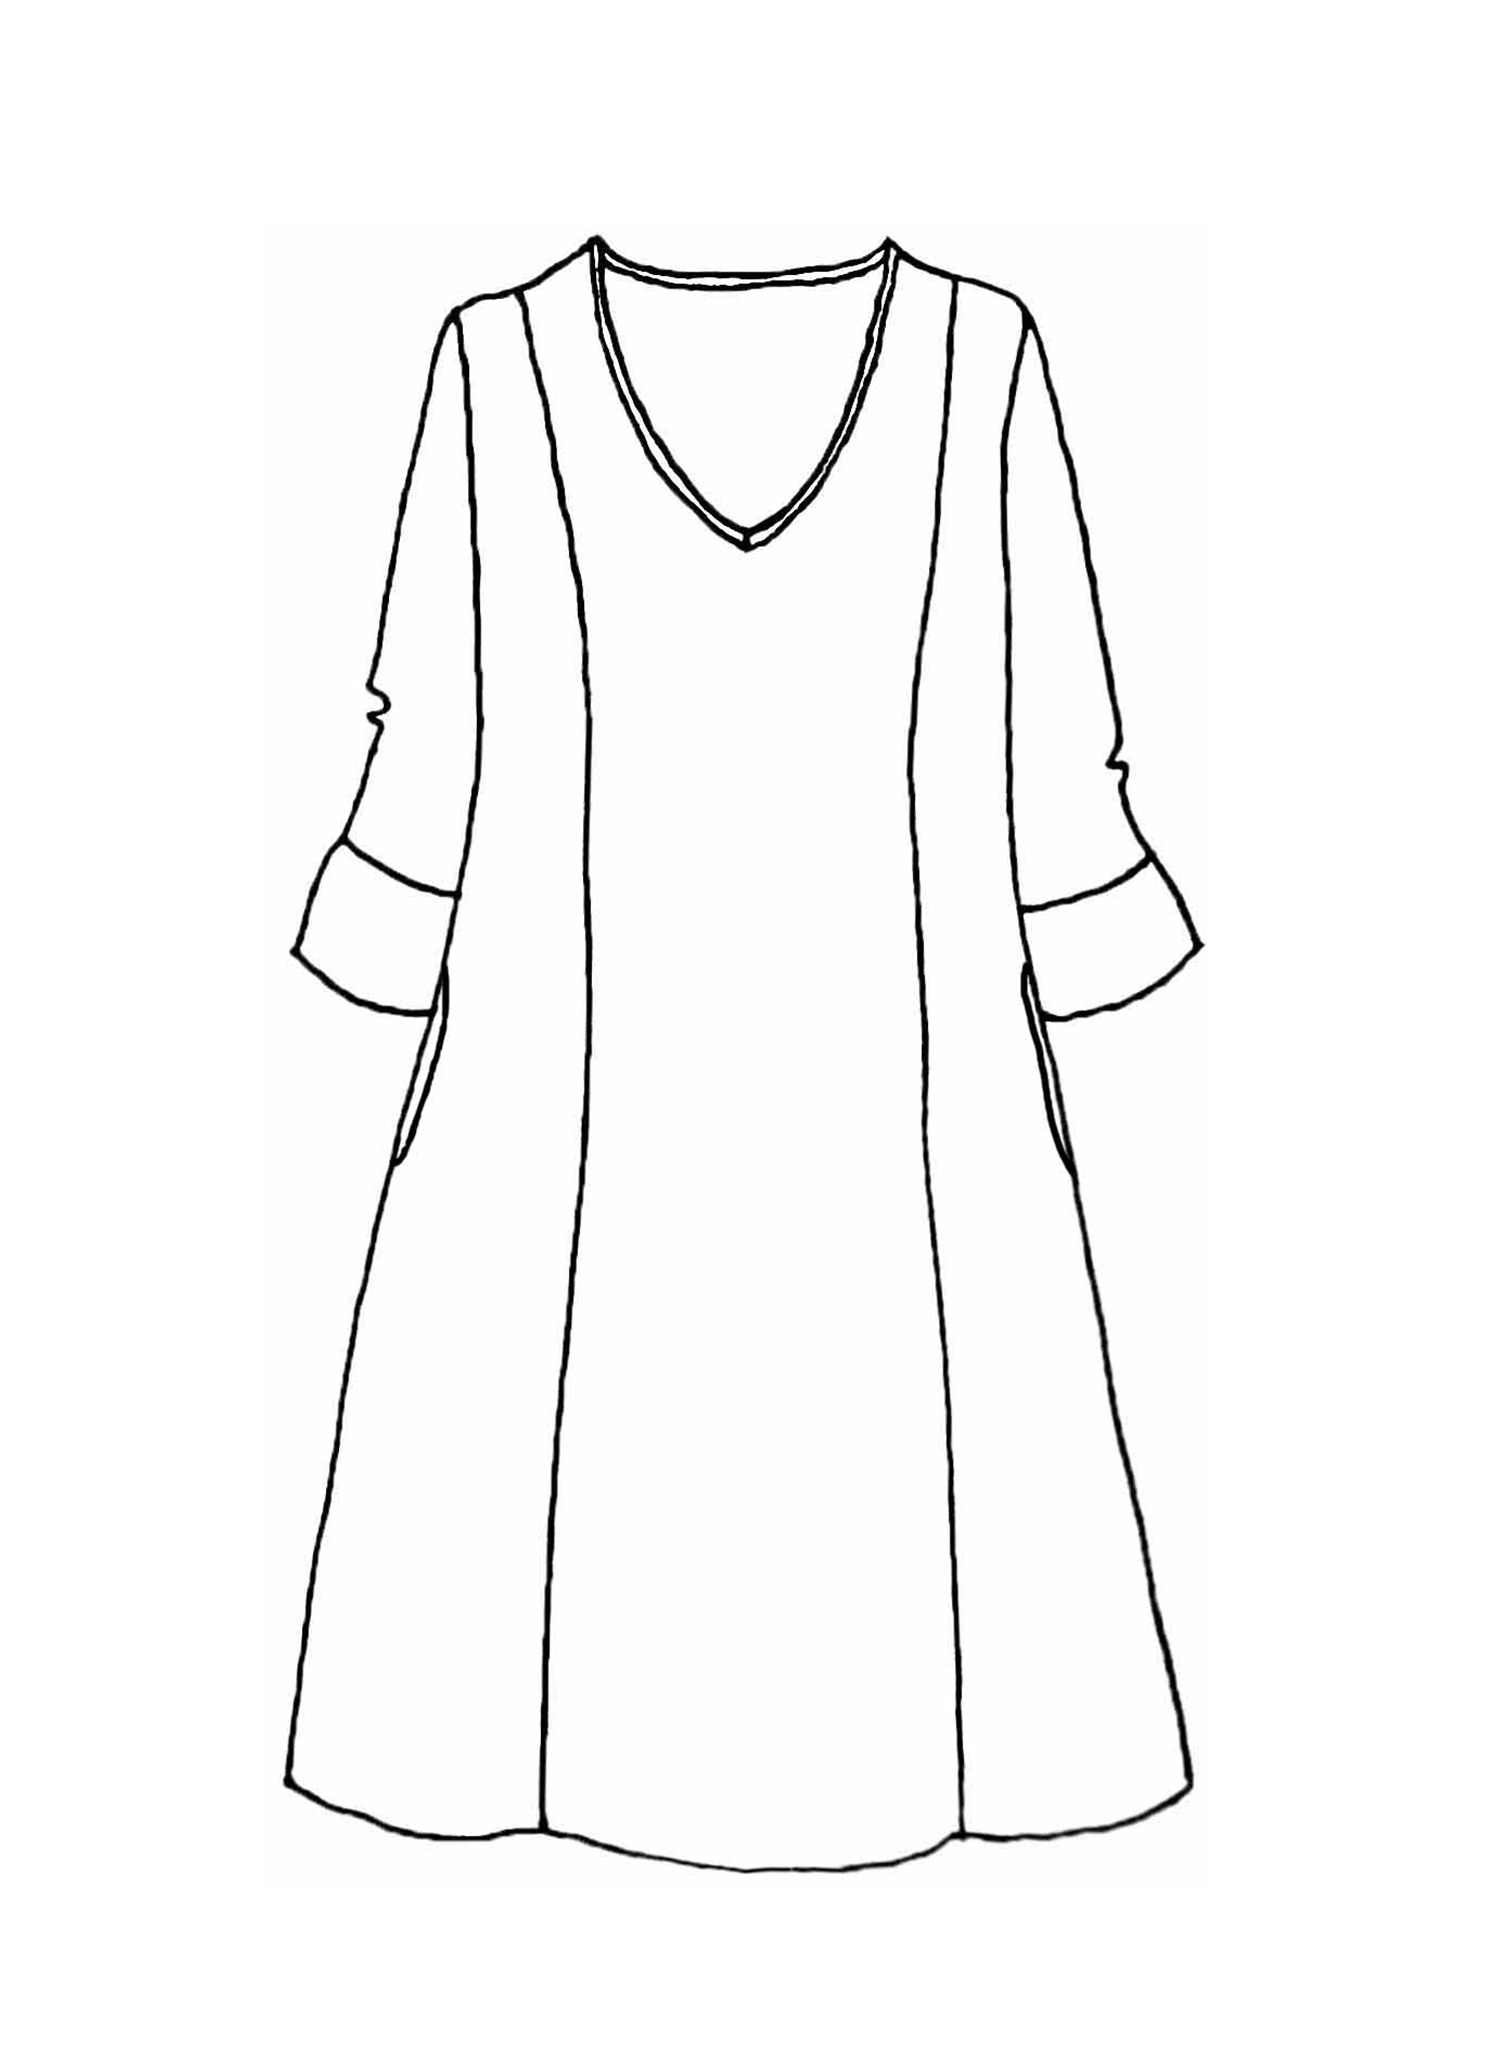 Iconic Dress sketch image